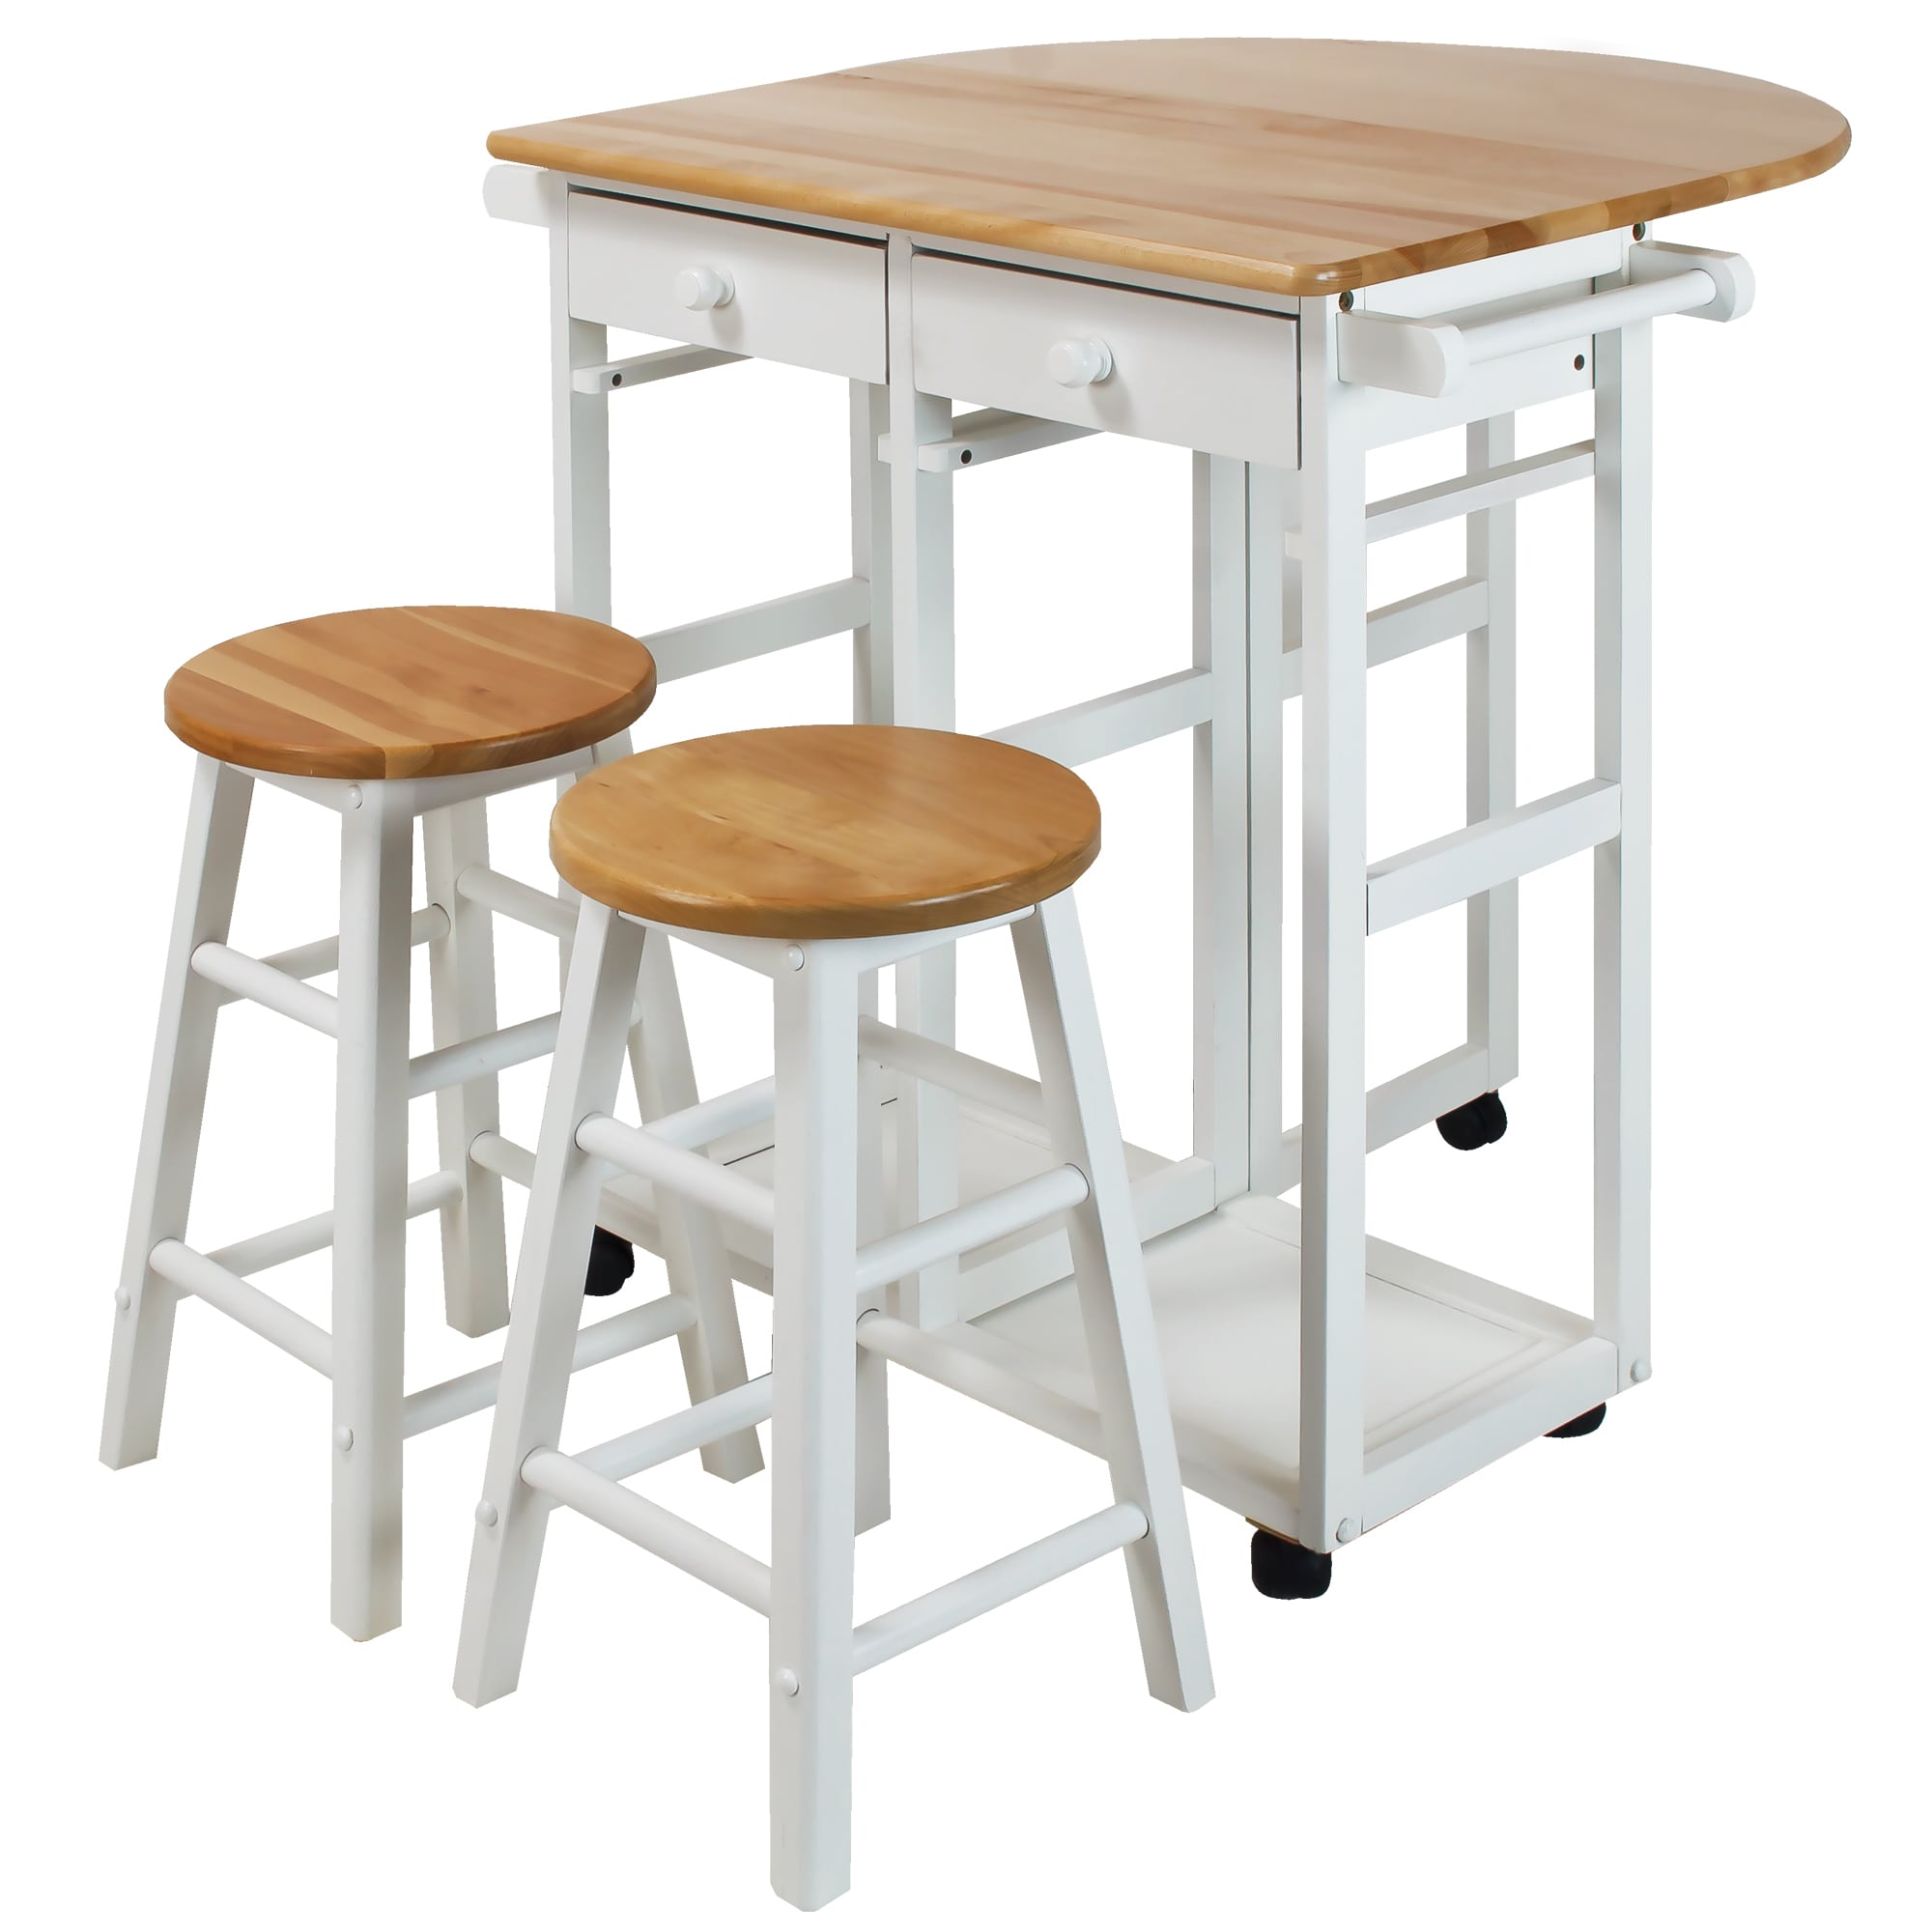 Captivating Arts And Crafts Breakfast Cart With Drop Leaf Table   Free Shipping Today    Overstock.com   19930999